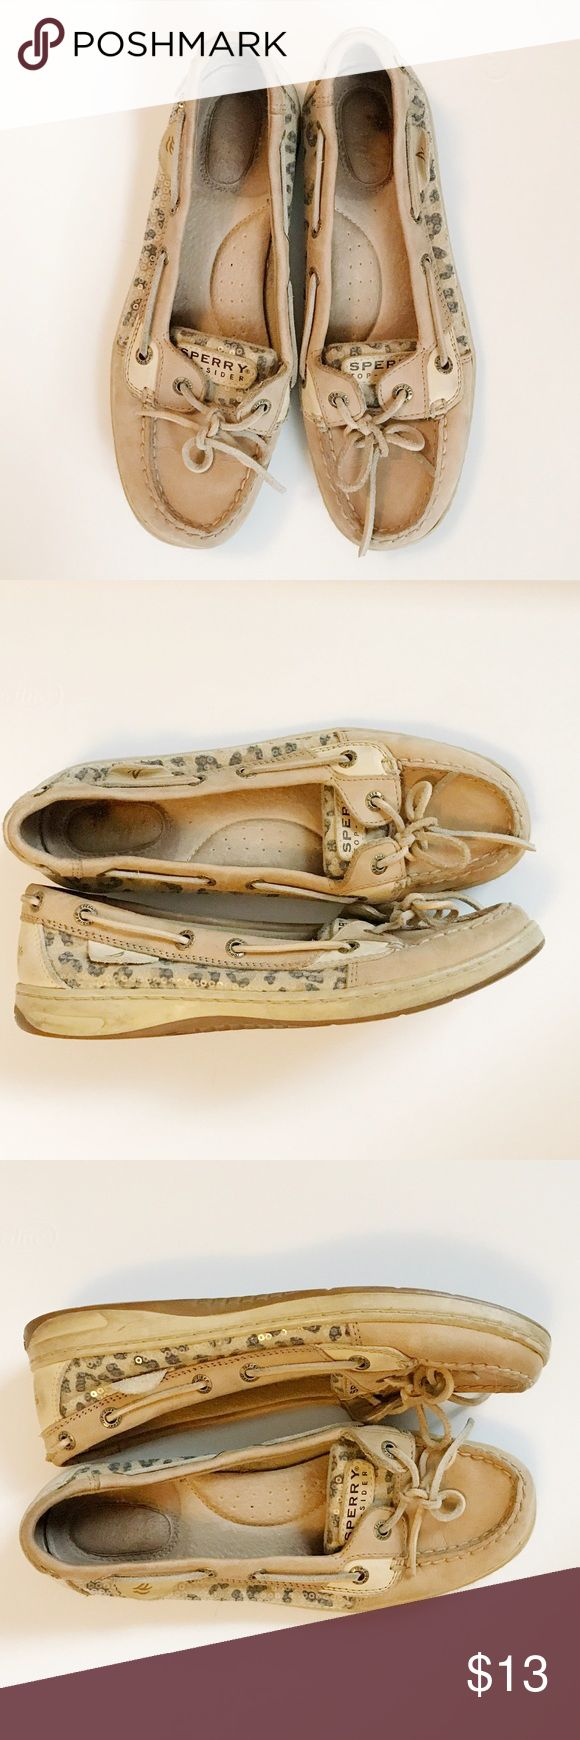 Leopard Sperry Boat Shoes Leopard Sperry Boat Shoes Sperry Top-Sider Shoes Flats & Loafers